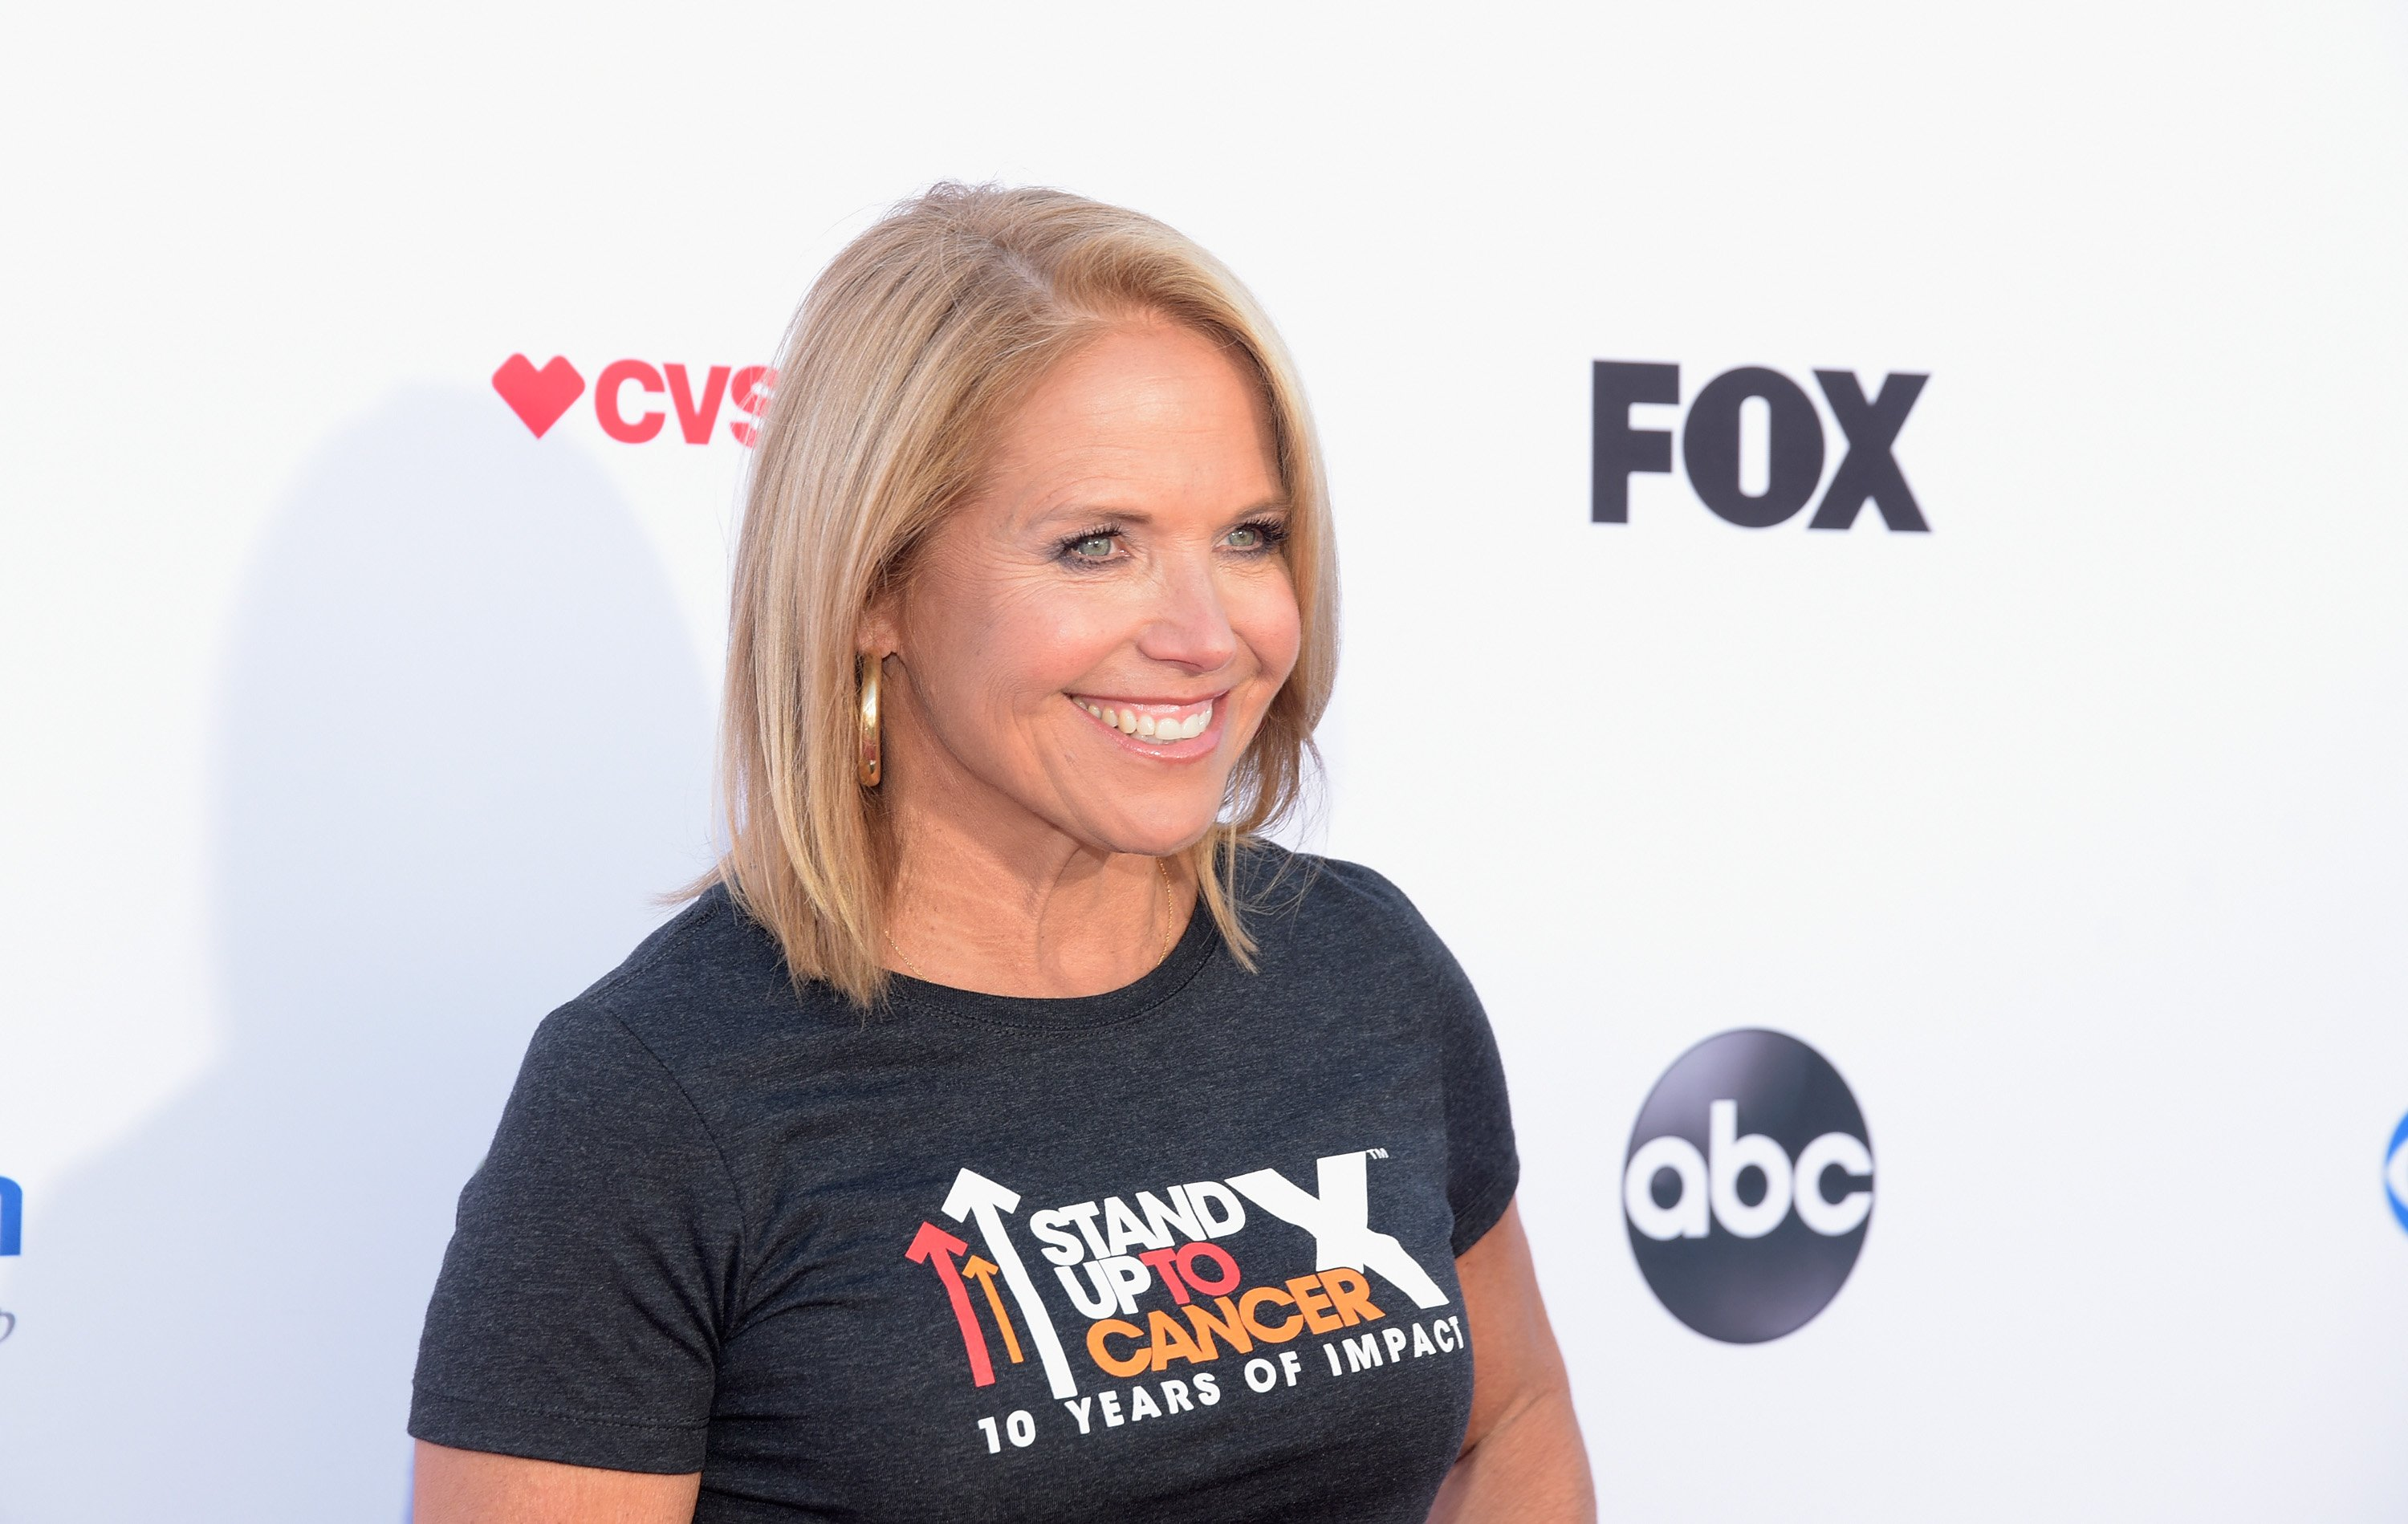 Katie Couric Image Source: Getty Images.